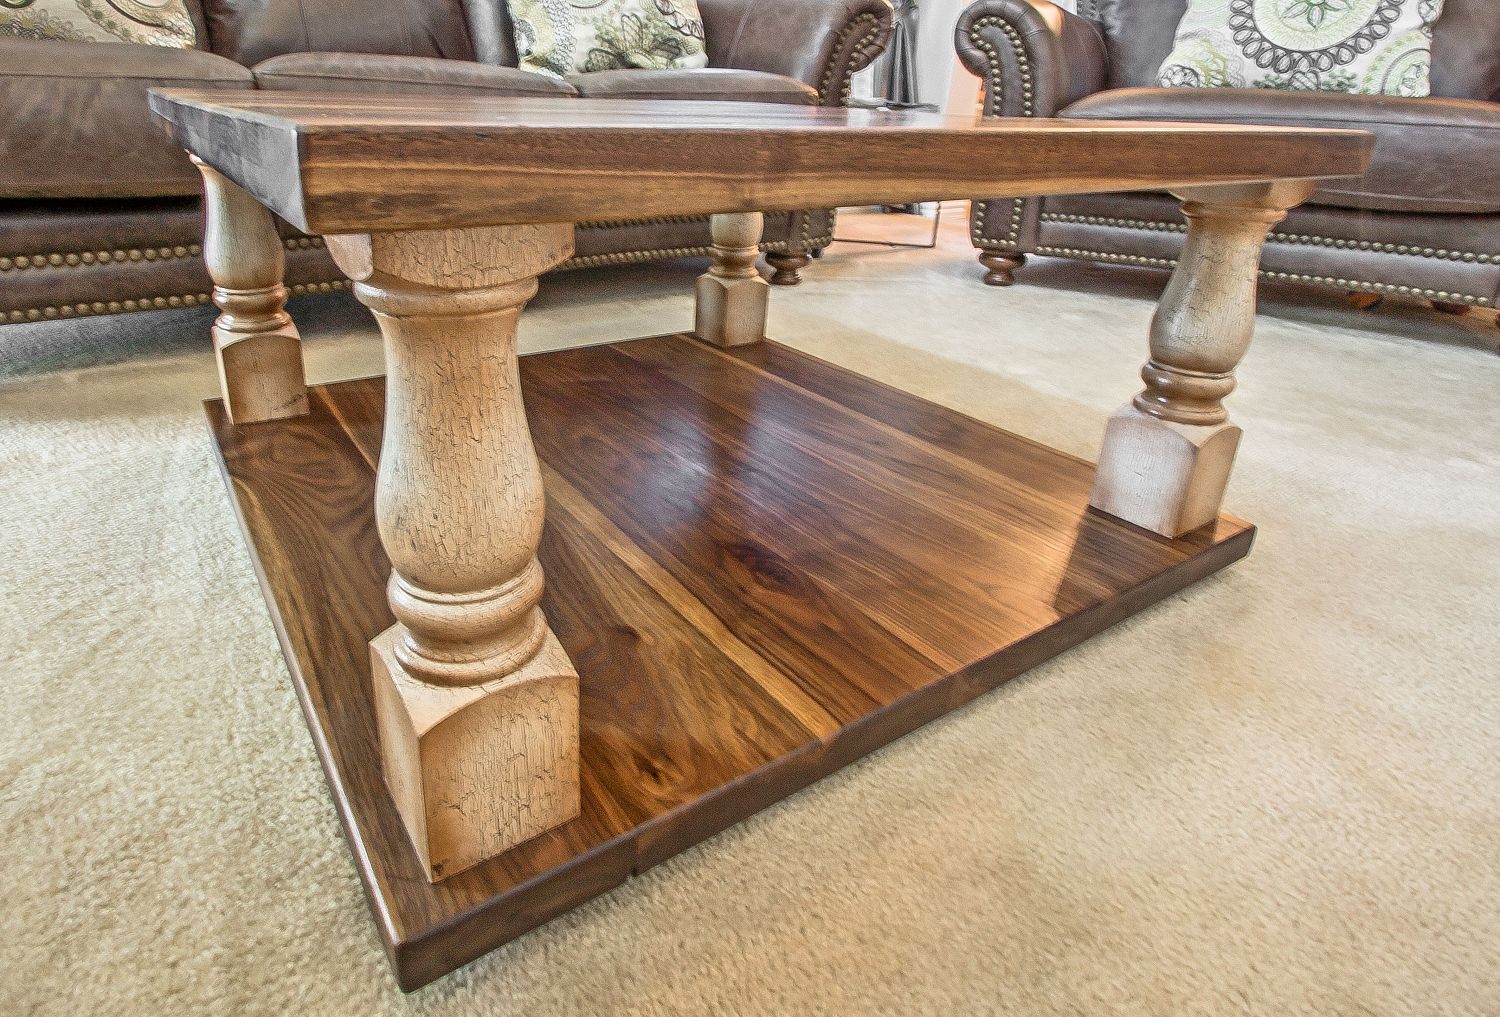 good looking unfinished wood coffee table legs where can you appalling view patio style best gallery tables furniture pine end large white tablecloth gold and marble accent oak